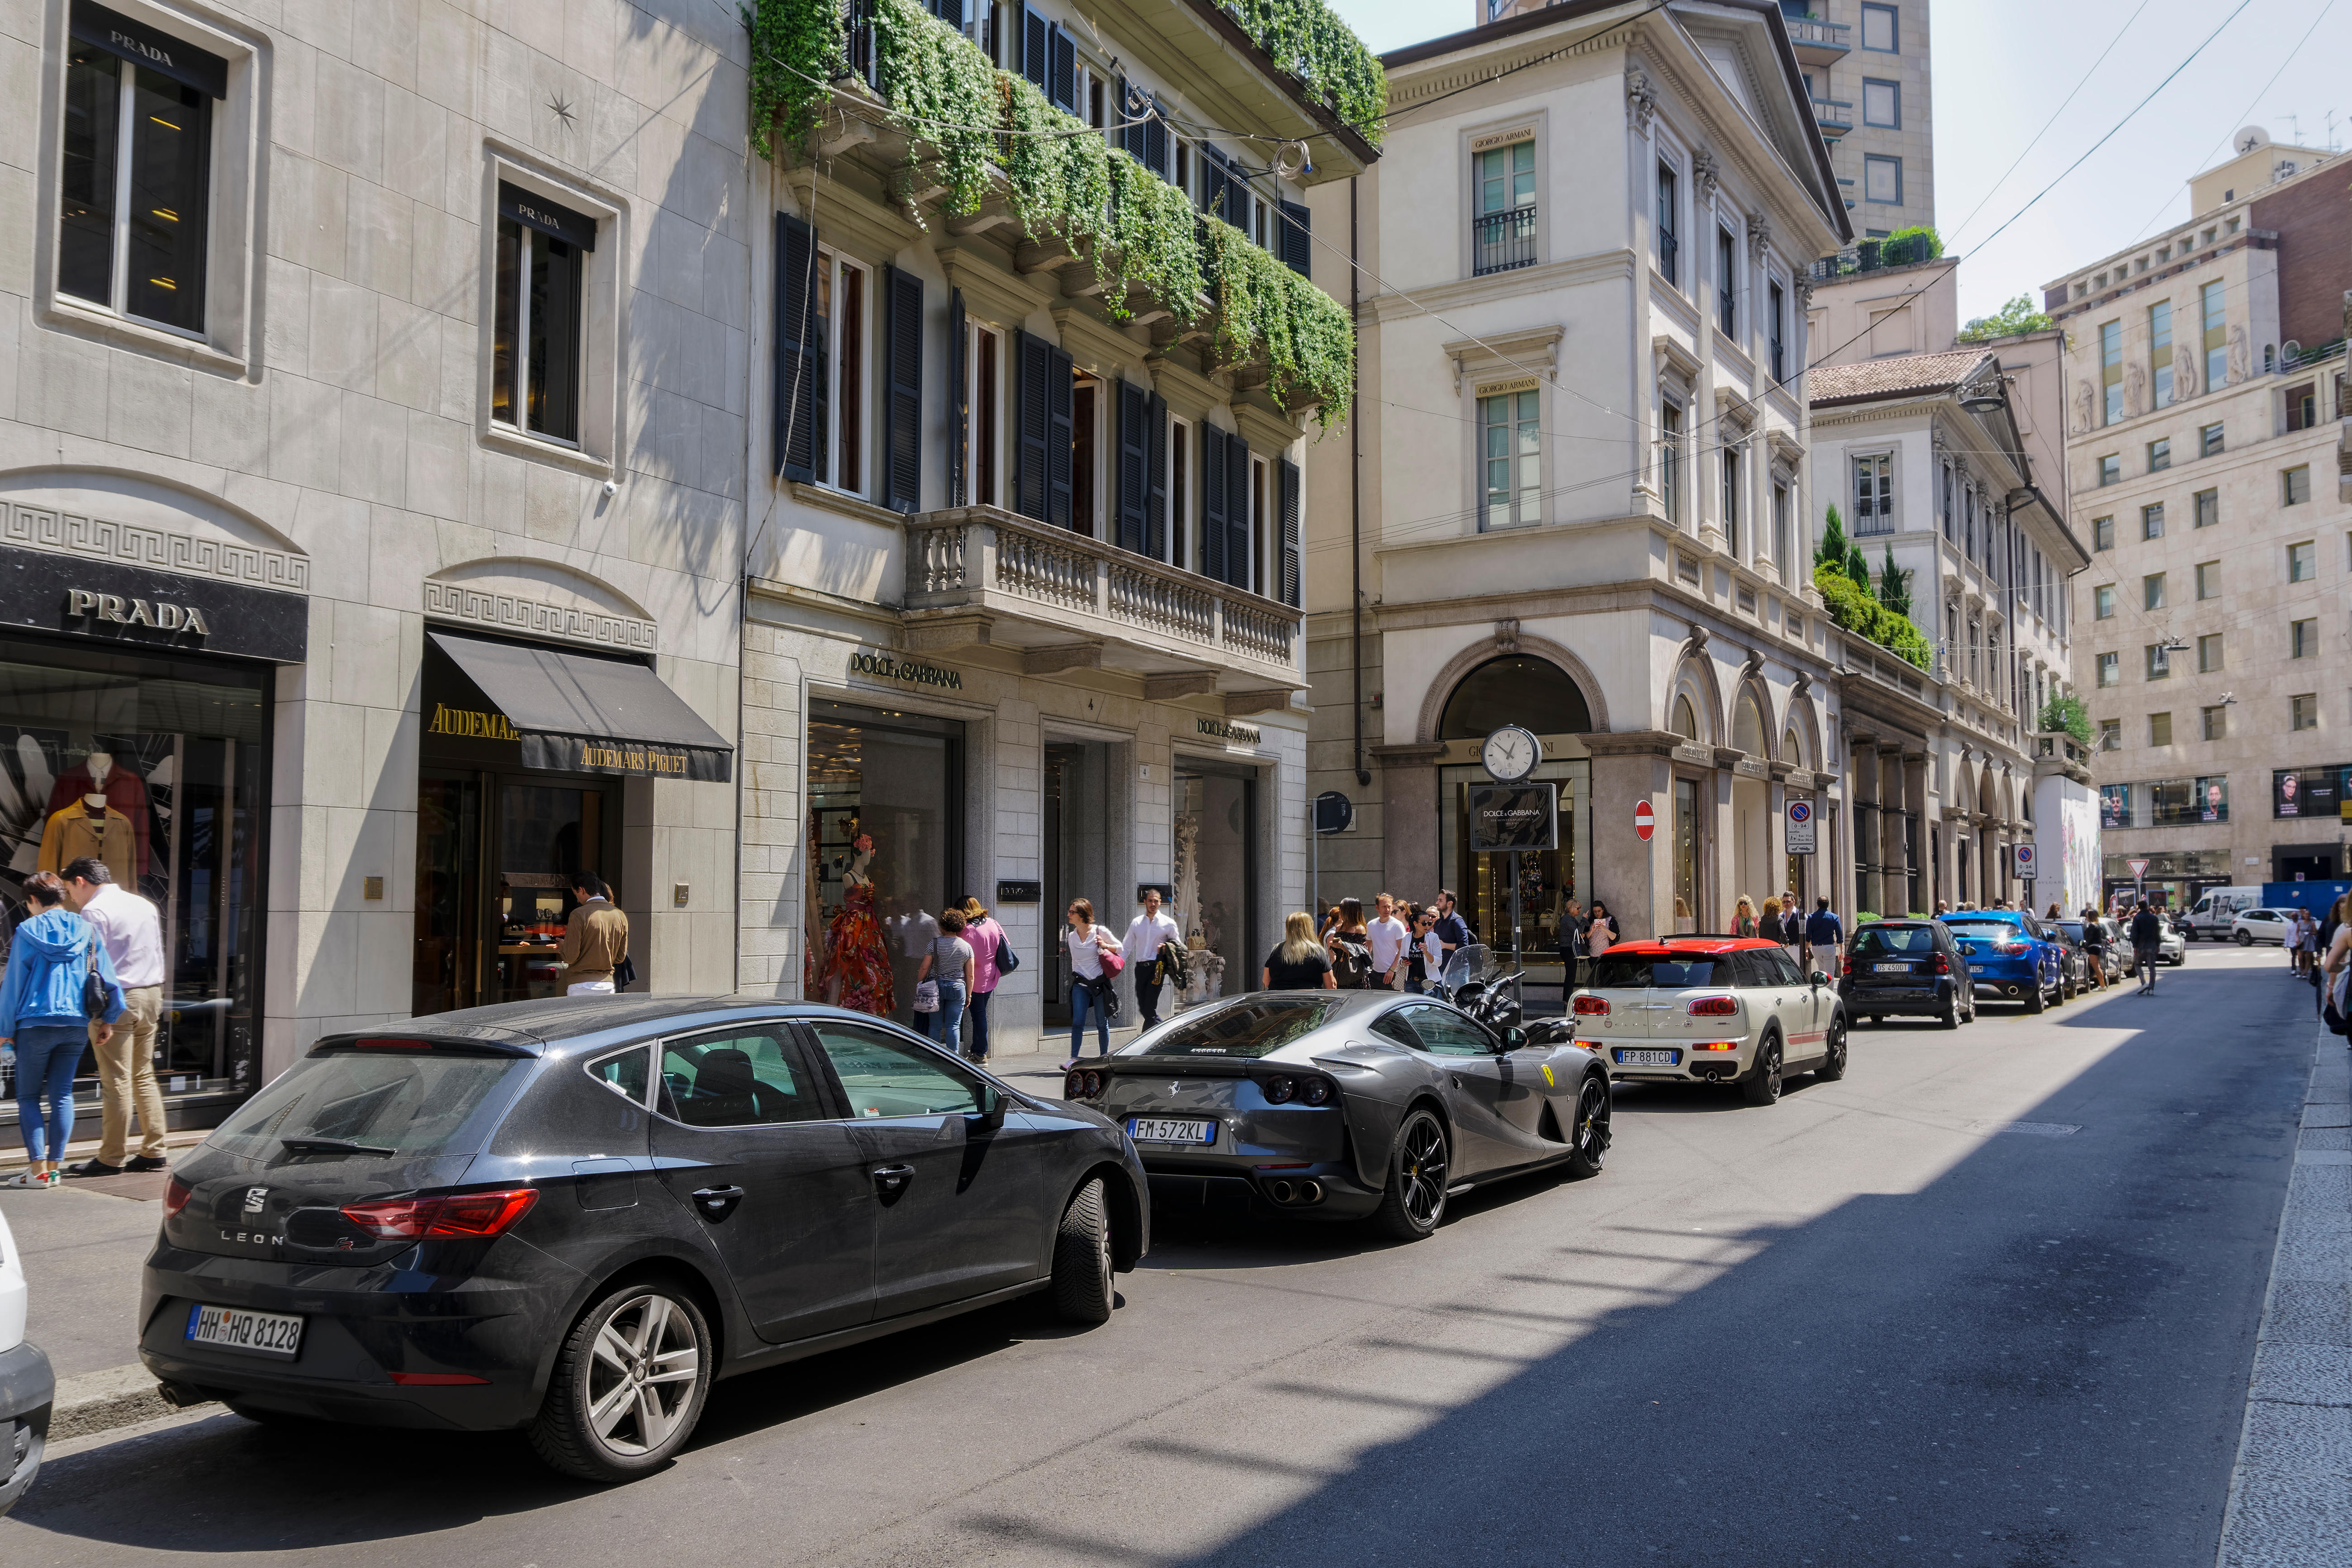 Milan Via Monte Napoleone upscale shopping street with luxury cars. People outside Milano fashion district Dolce & Gabbana high end exclusive boutique